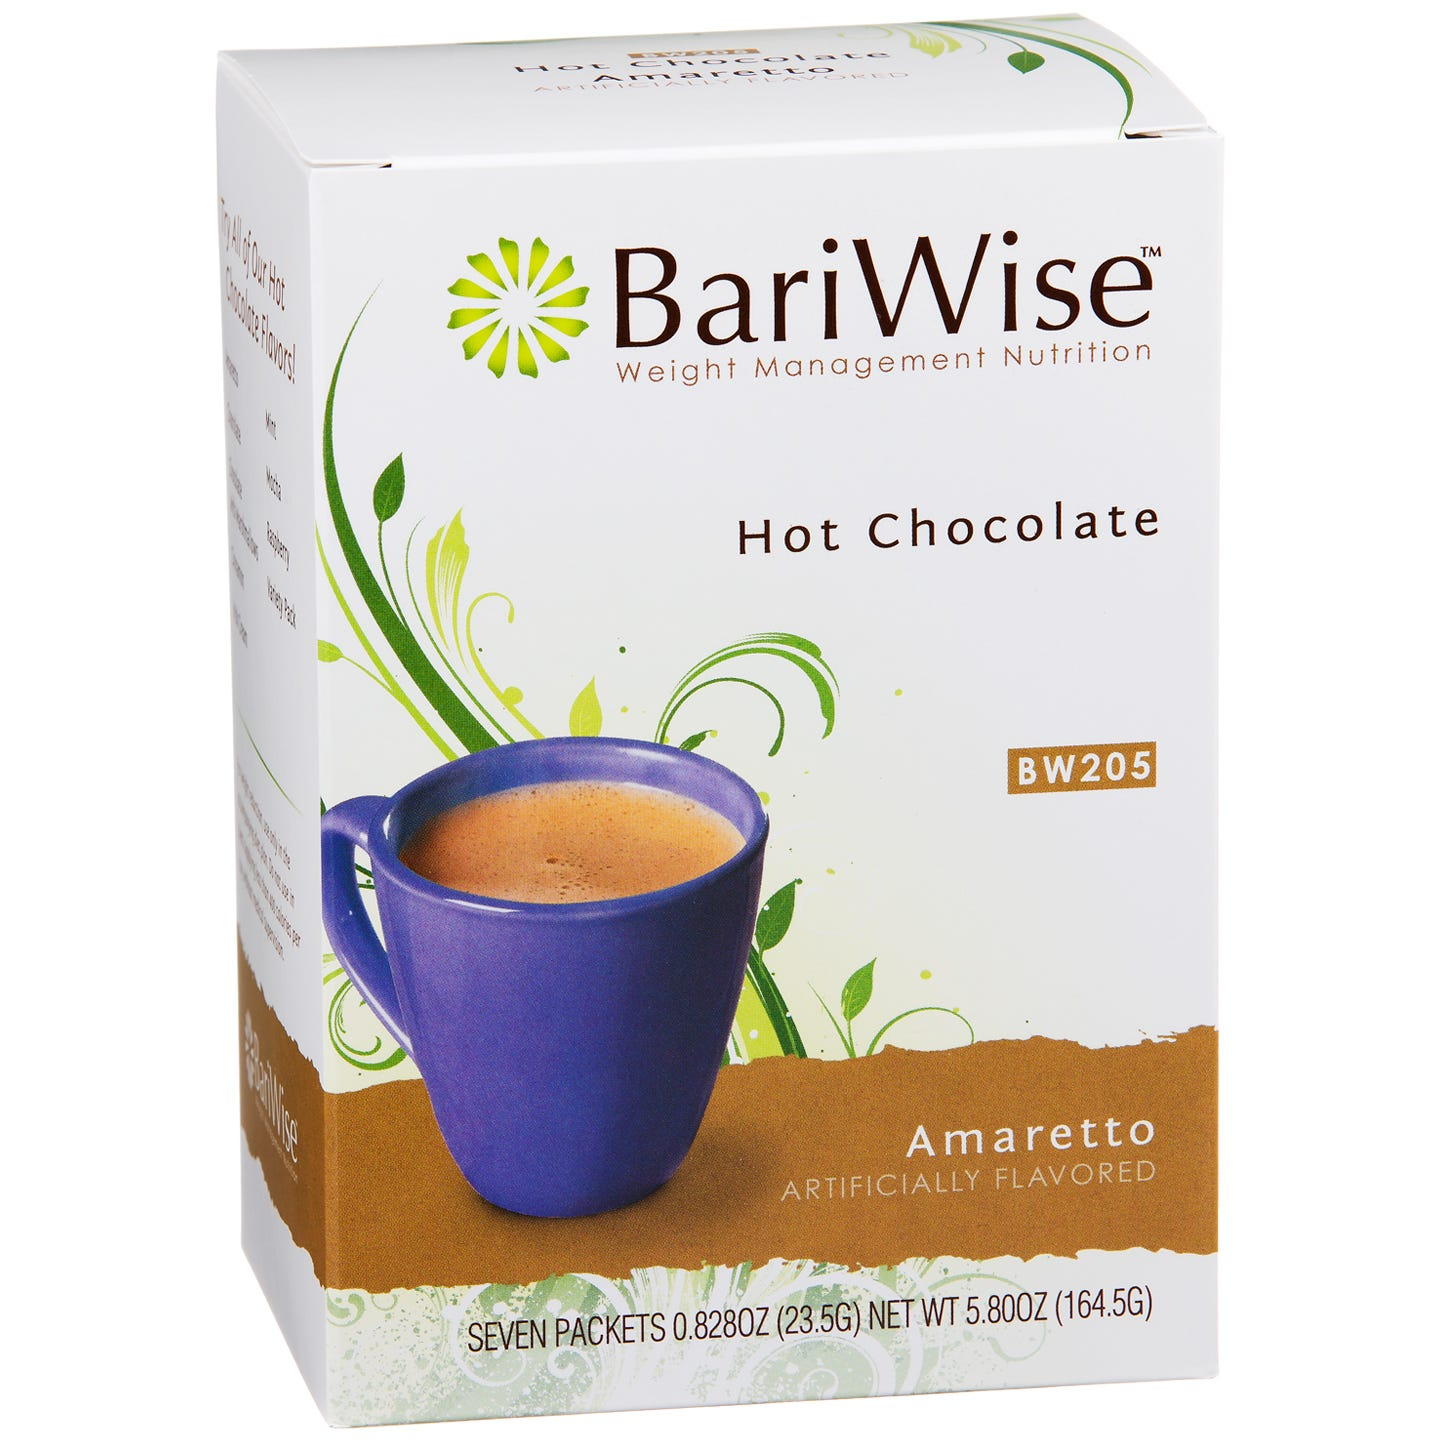 BariWise Protein Diet Hot Chocolate - Amaretto